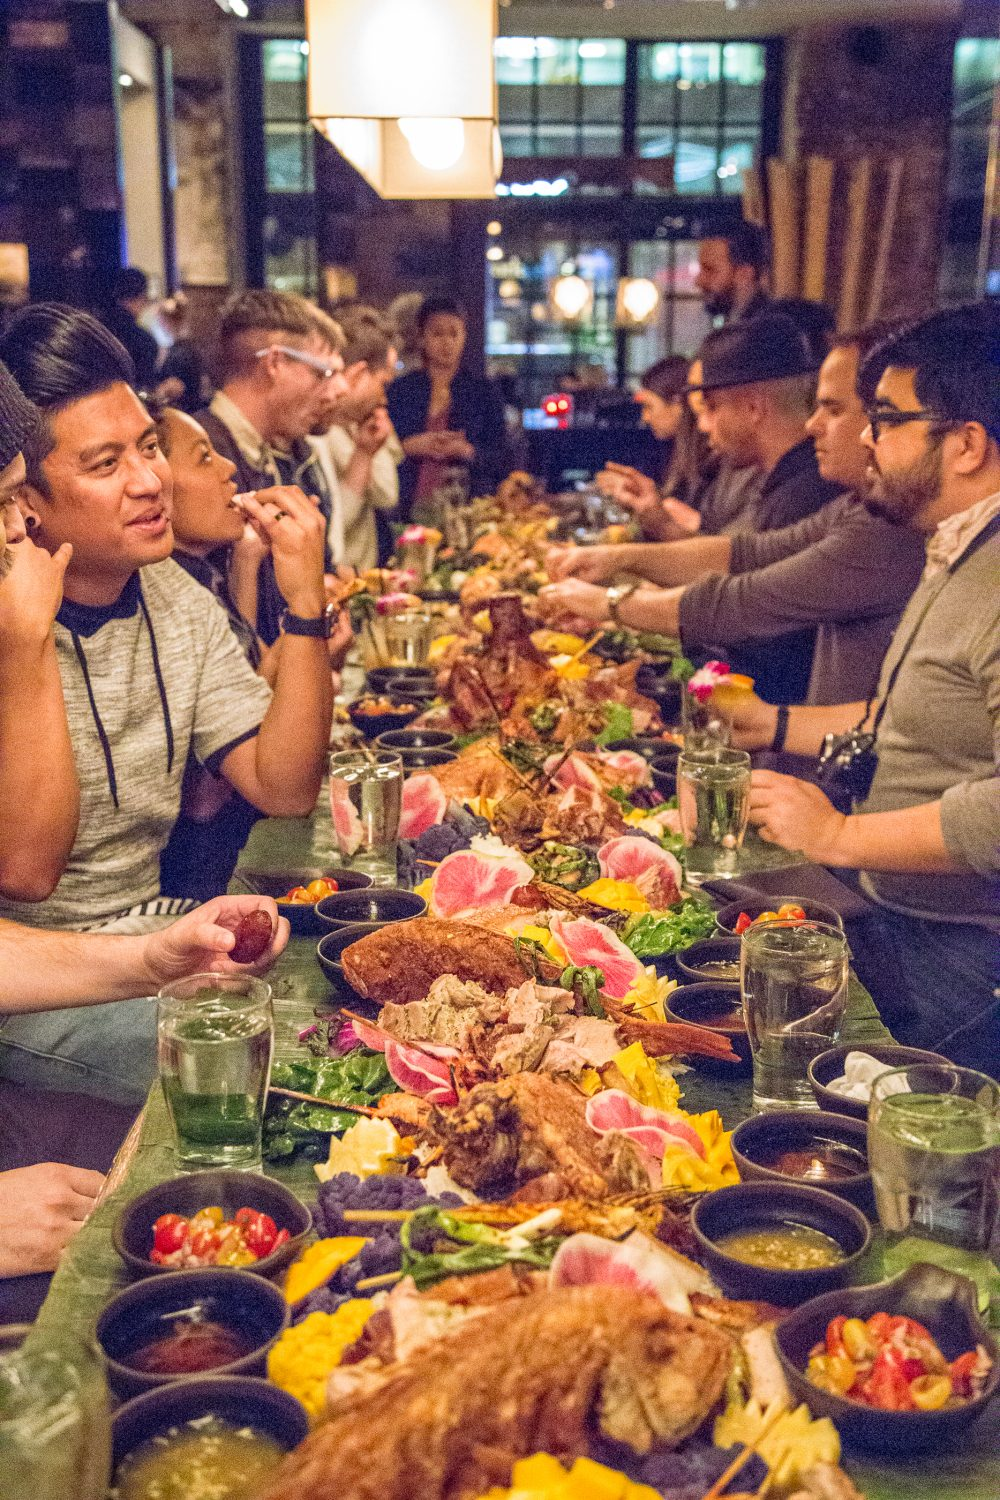 The Kamayan Feast: Head to Nashville's Sunda New Asian for This Exotic Eating Experience